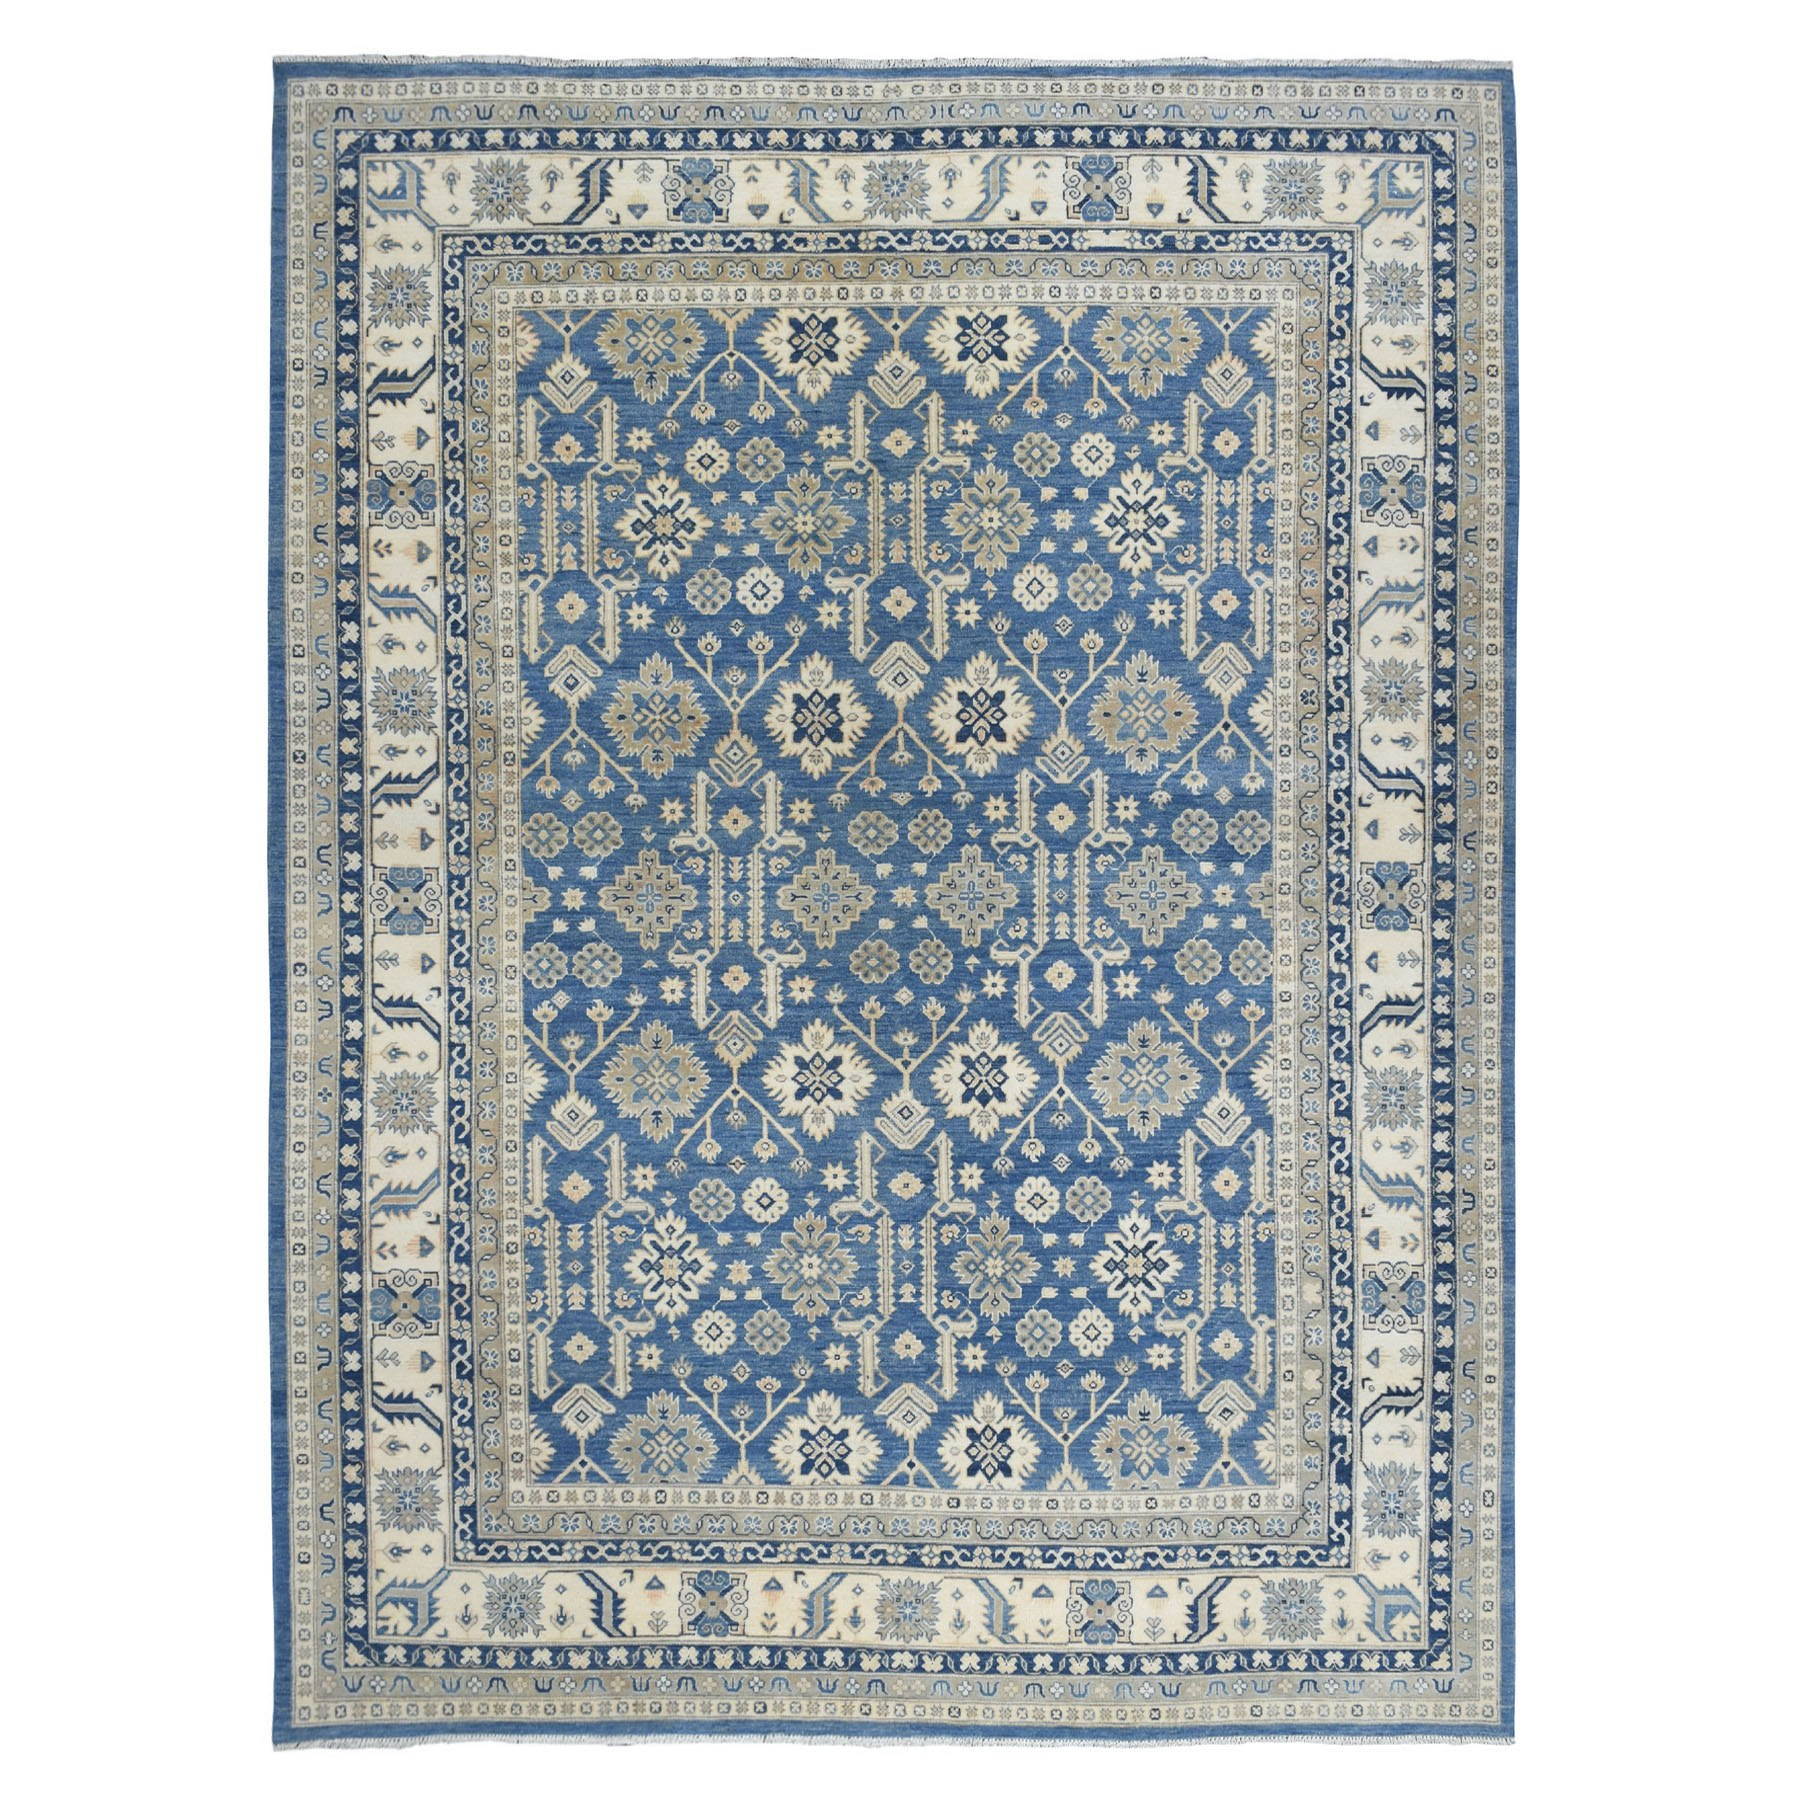 "9'x11'9"" Blue All Over Design Hand Knotted Pure Wool Vintage Look Kazak Oriental Rug"